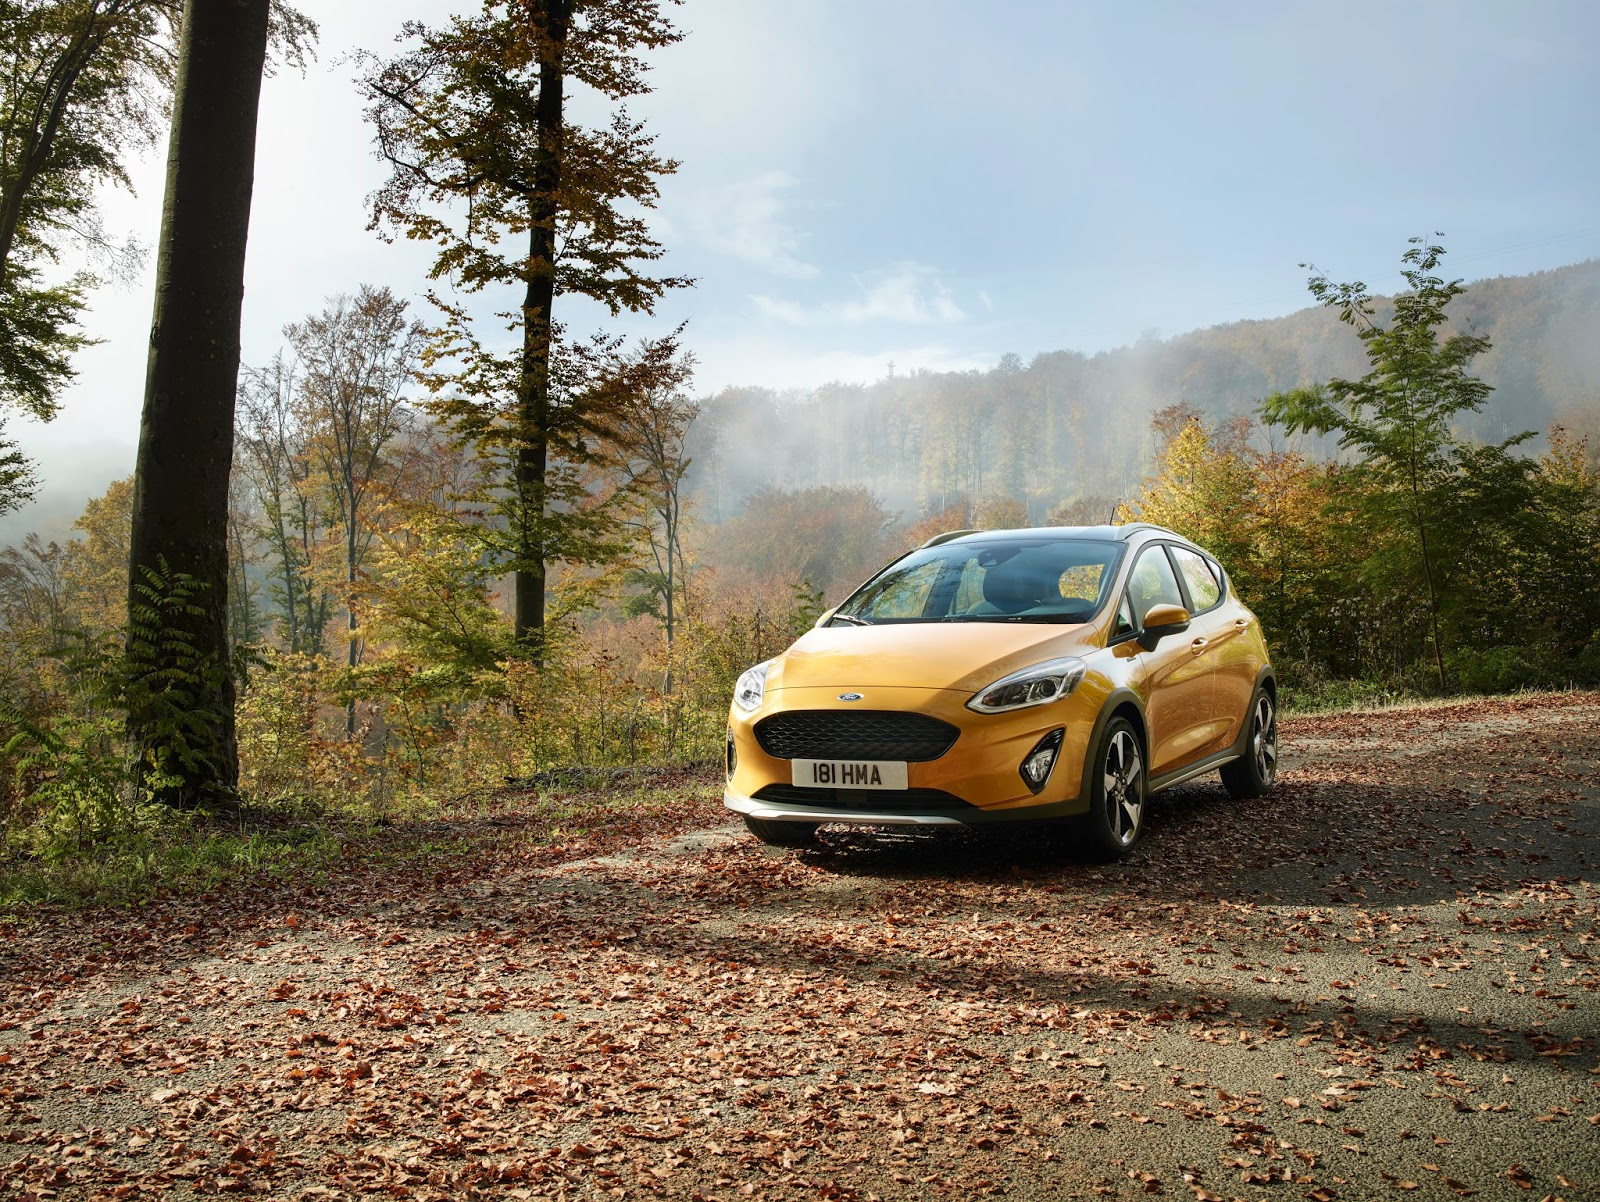 FORD FIESTA2016 ACTIVE 34 FRONT BEAUTY 02 Τα πρώτα Ford Fiesta έρχονται στην Ελλάδα, με τιμή από 12.990€